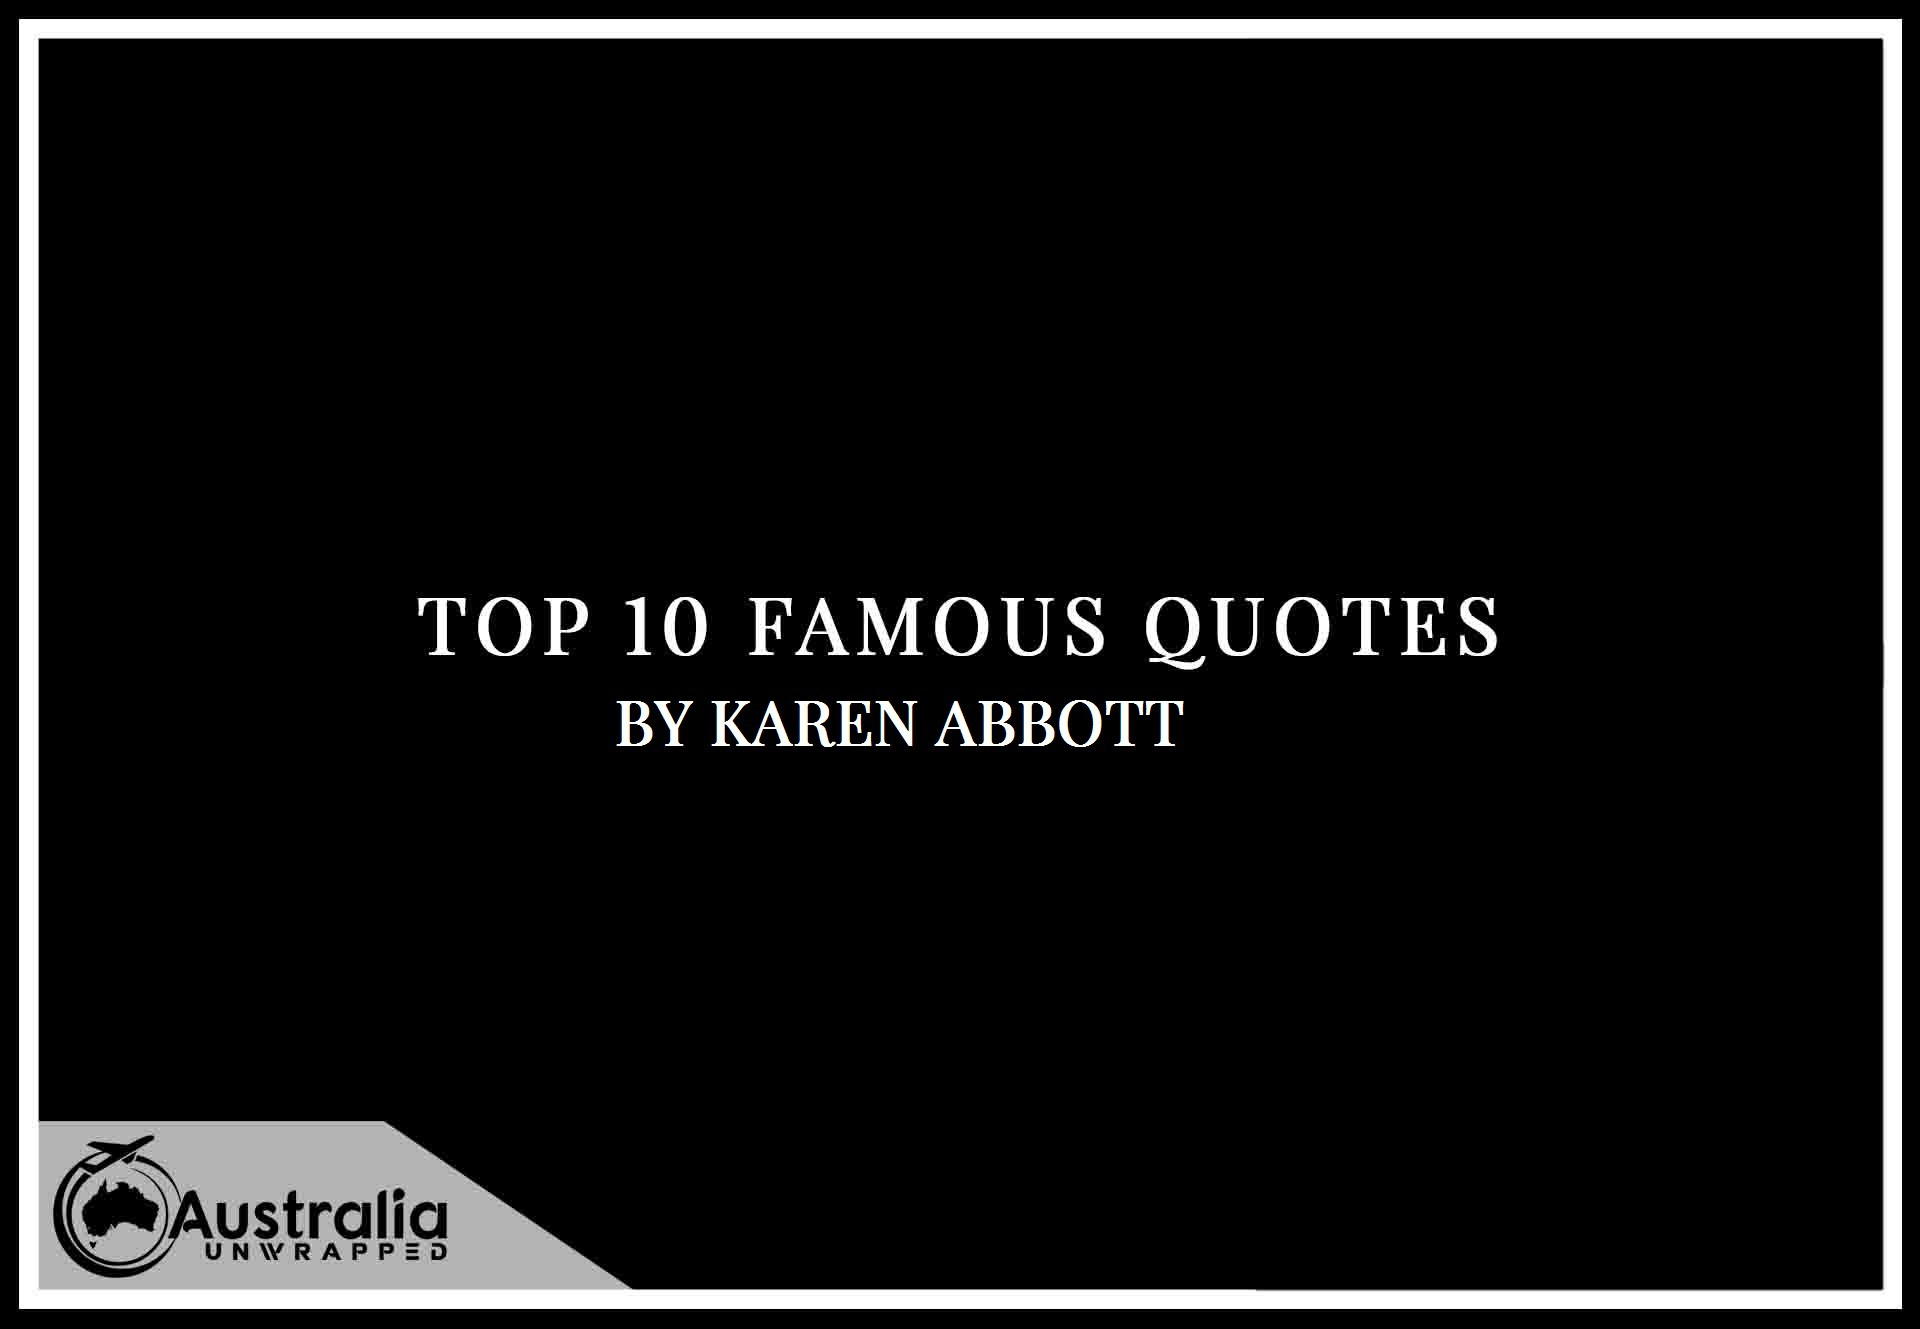 Karen Abbott's Top 10 Popular and Famous Quotes